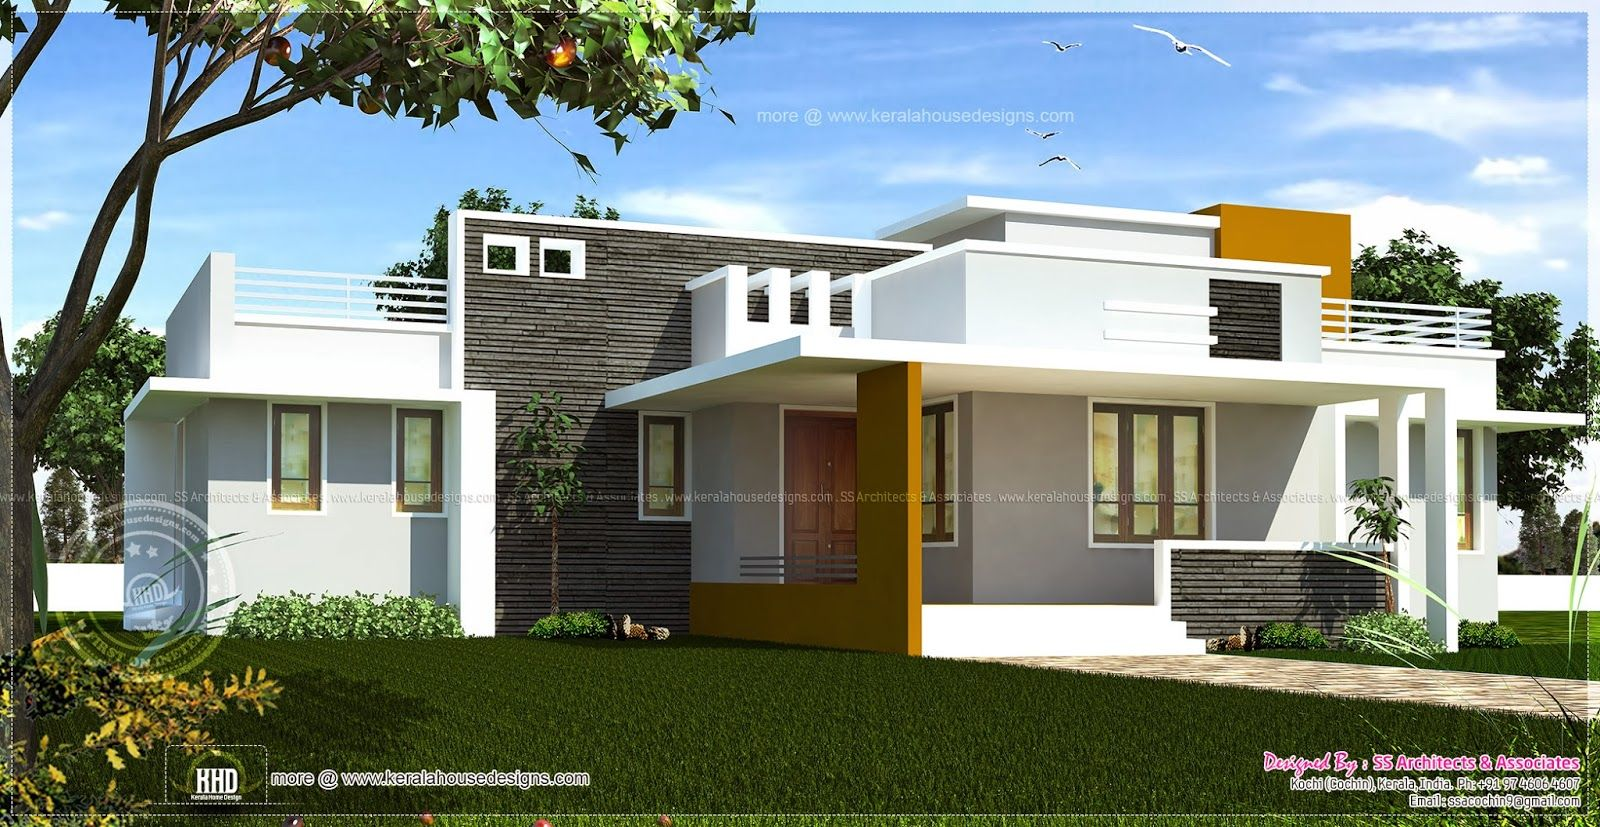 Excellent single home designs single floor contemporary for Home style subscription